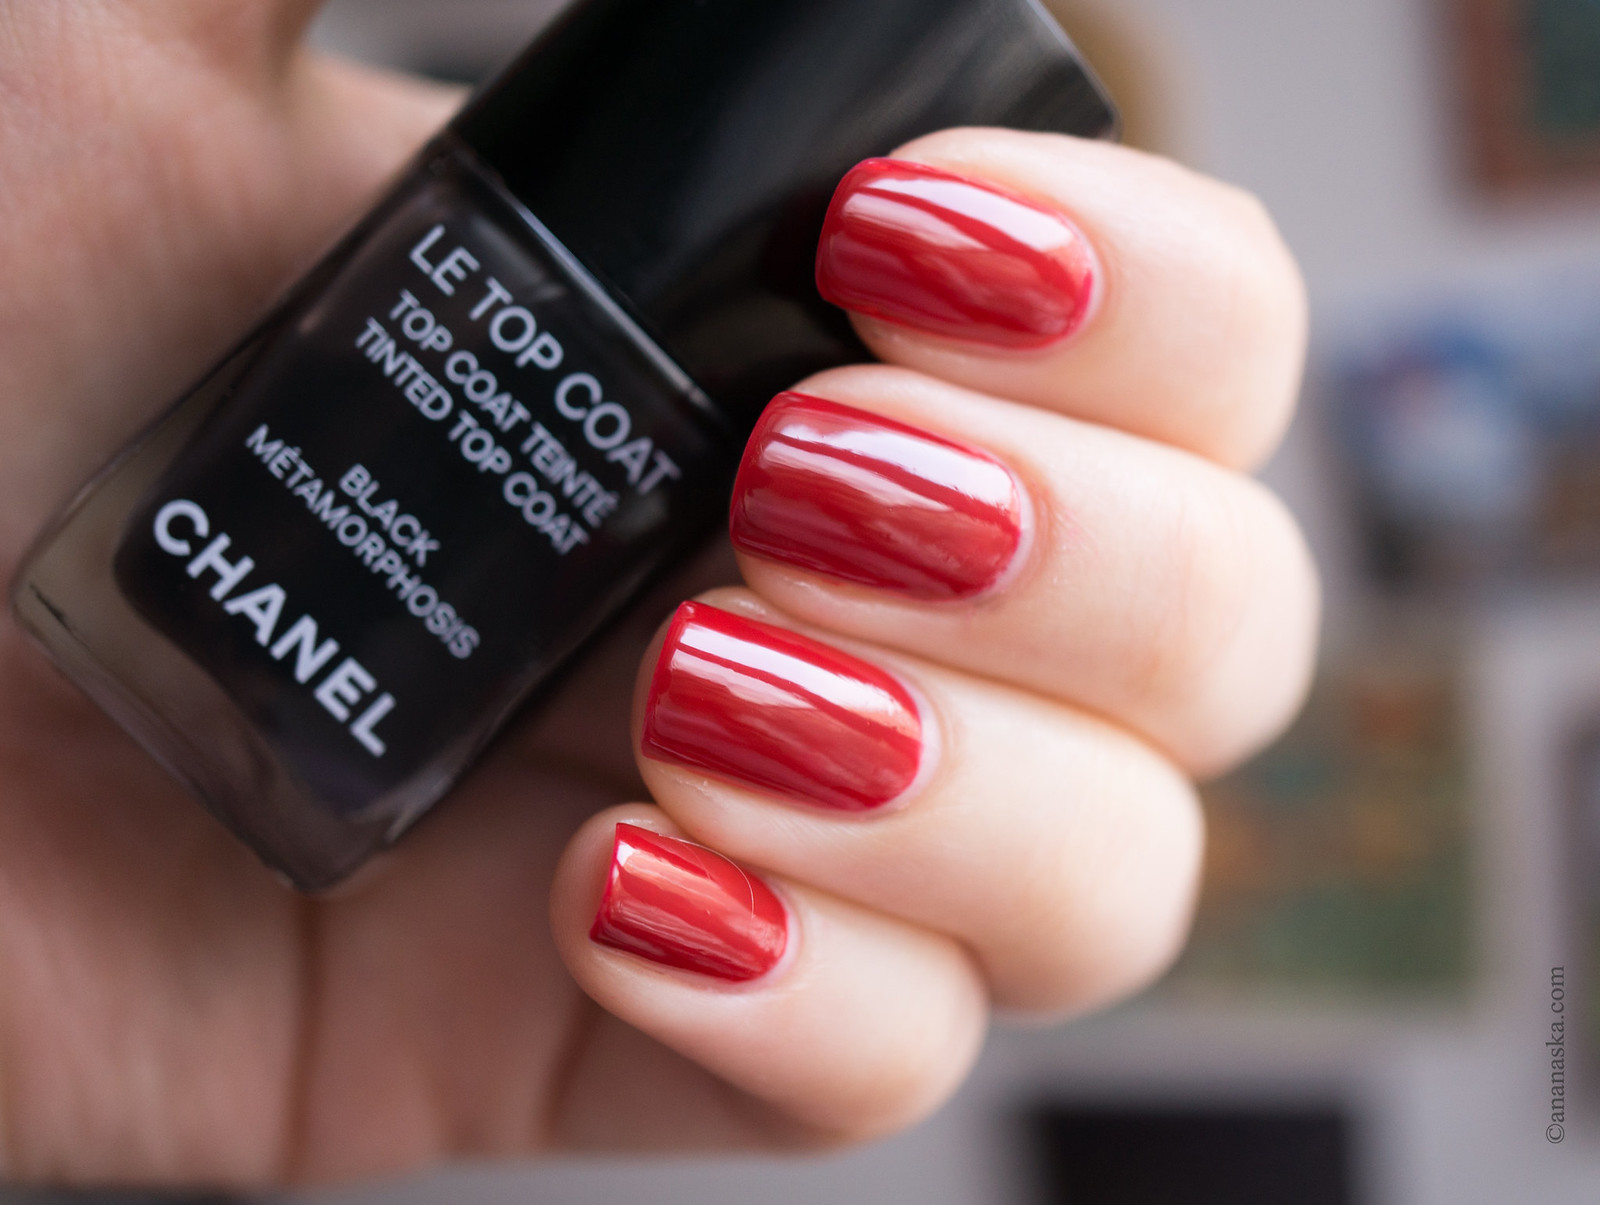 Chanel Le Vernis Longue Tenue 546 Rouge Red + Le Top Coat Black Metamorphosis